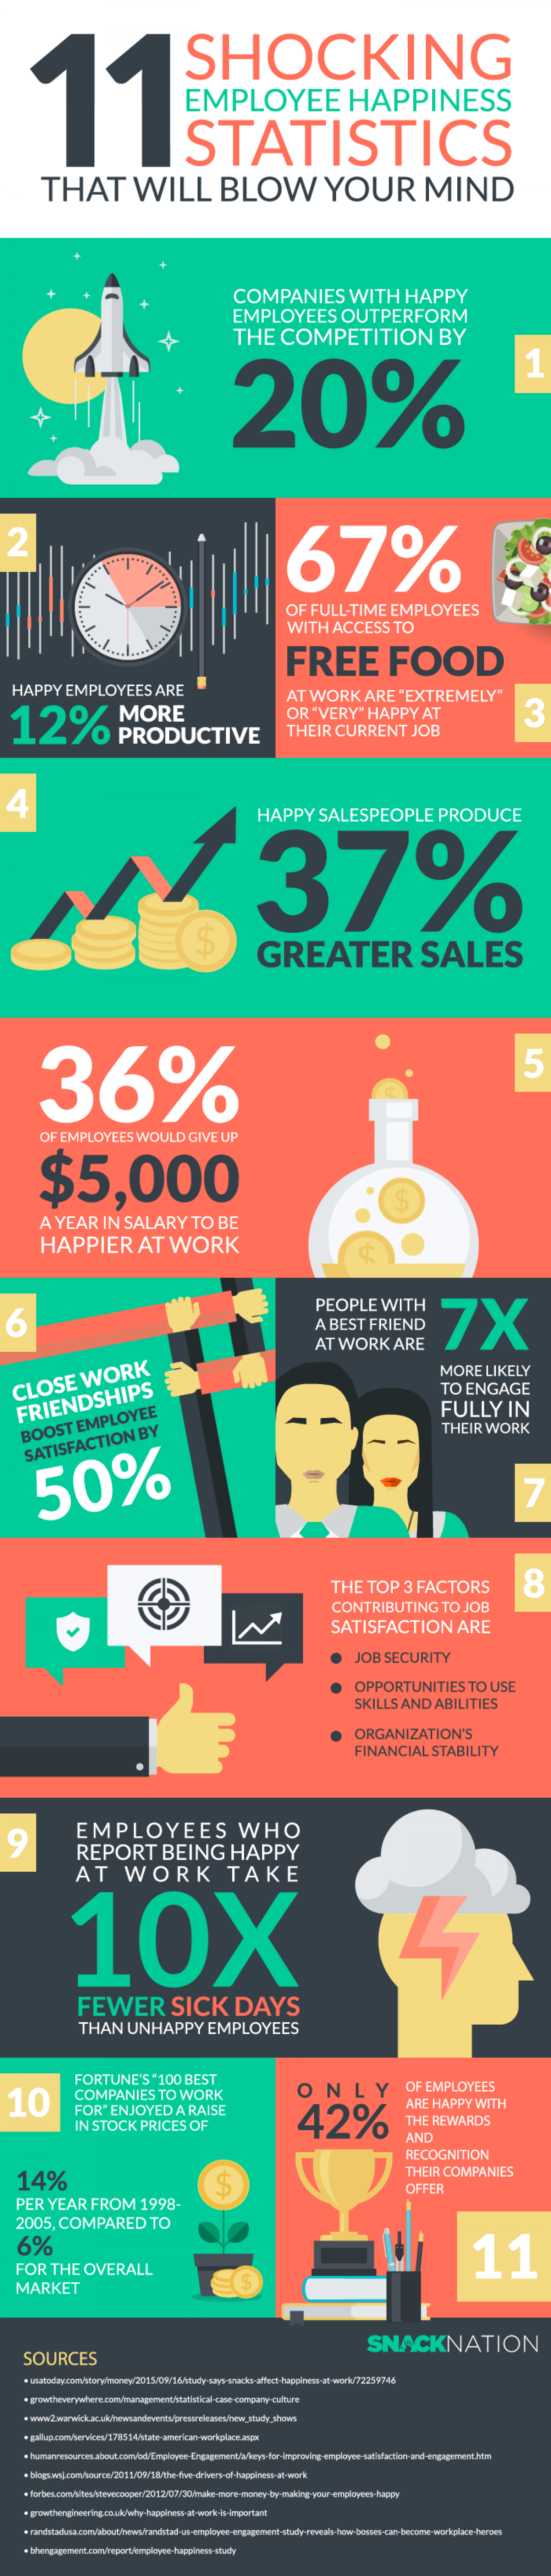 11 Shocking Employee Happiness Statistics That Will Blow your Mind Infographic